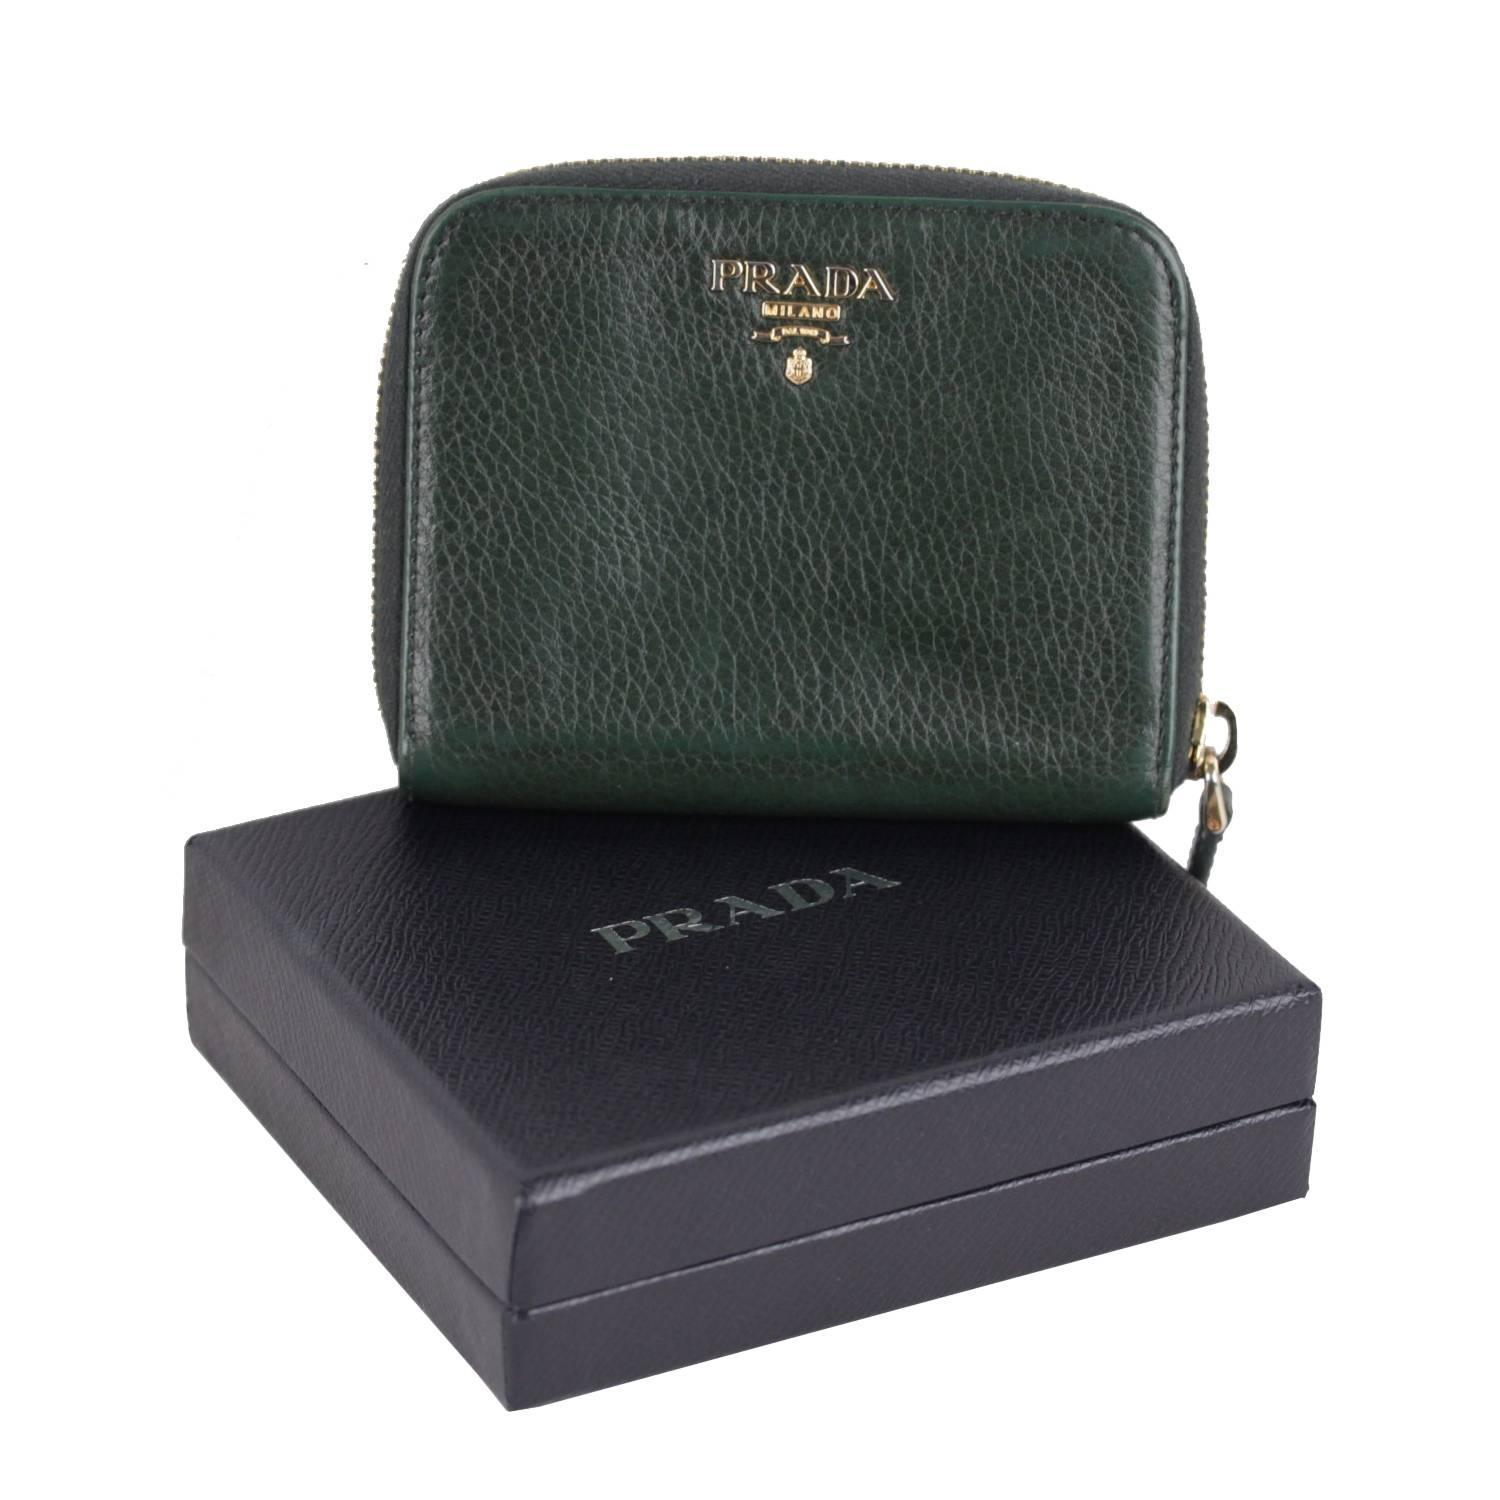 PRADA Black Leather SAFFIANO FIOCCO Ribbon STRAP WALLET Purse WOC ...